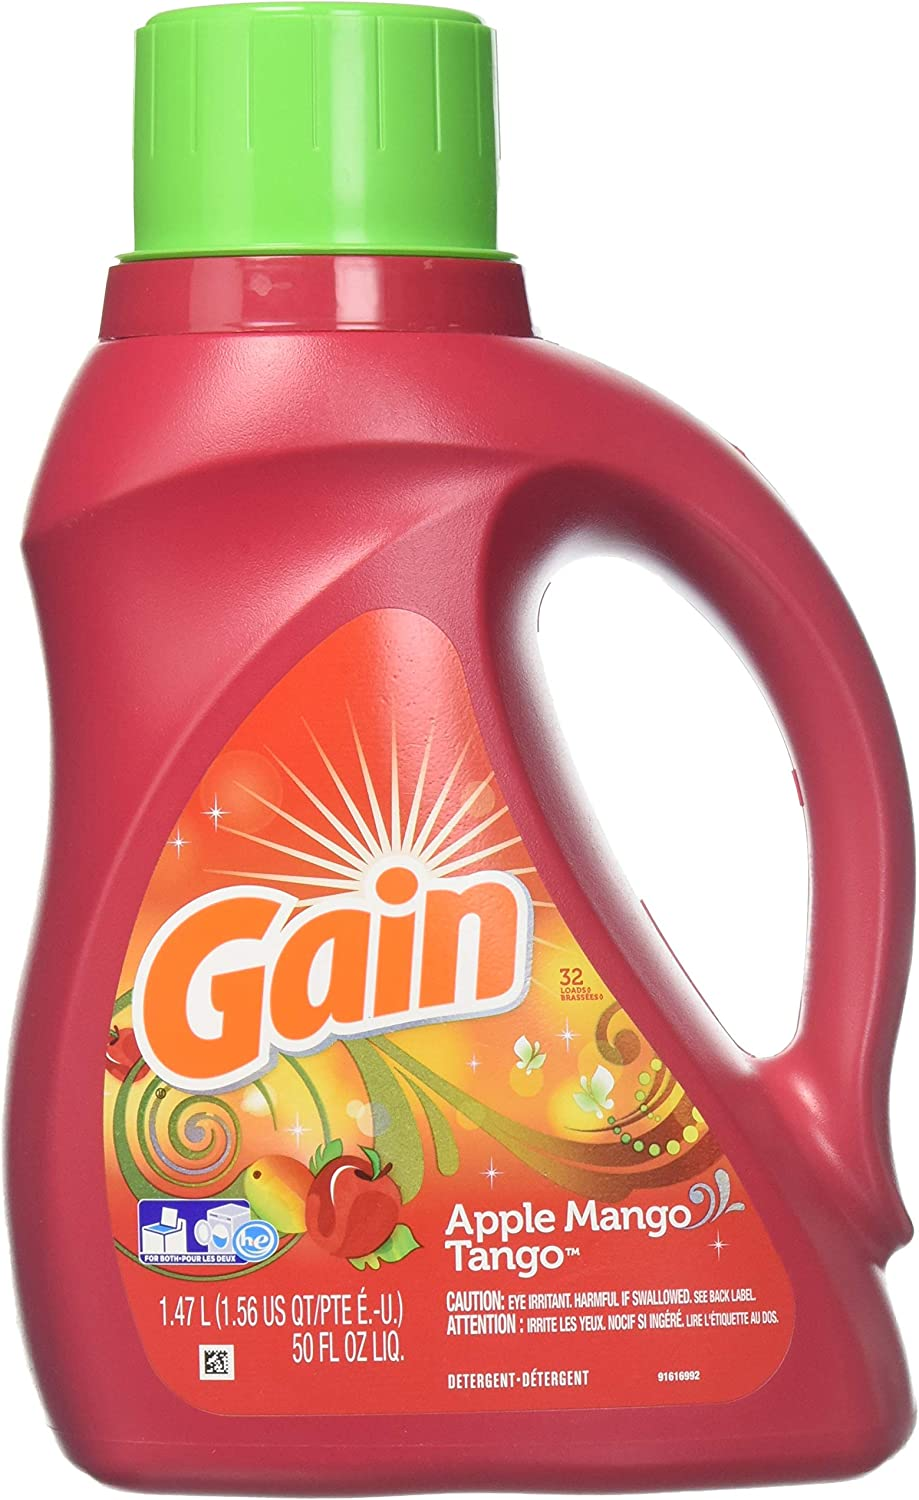 Gain Liquid Laundry Detergent, Apple Mango Tango Scent, 1.47 L (24 Loads)